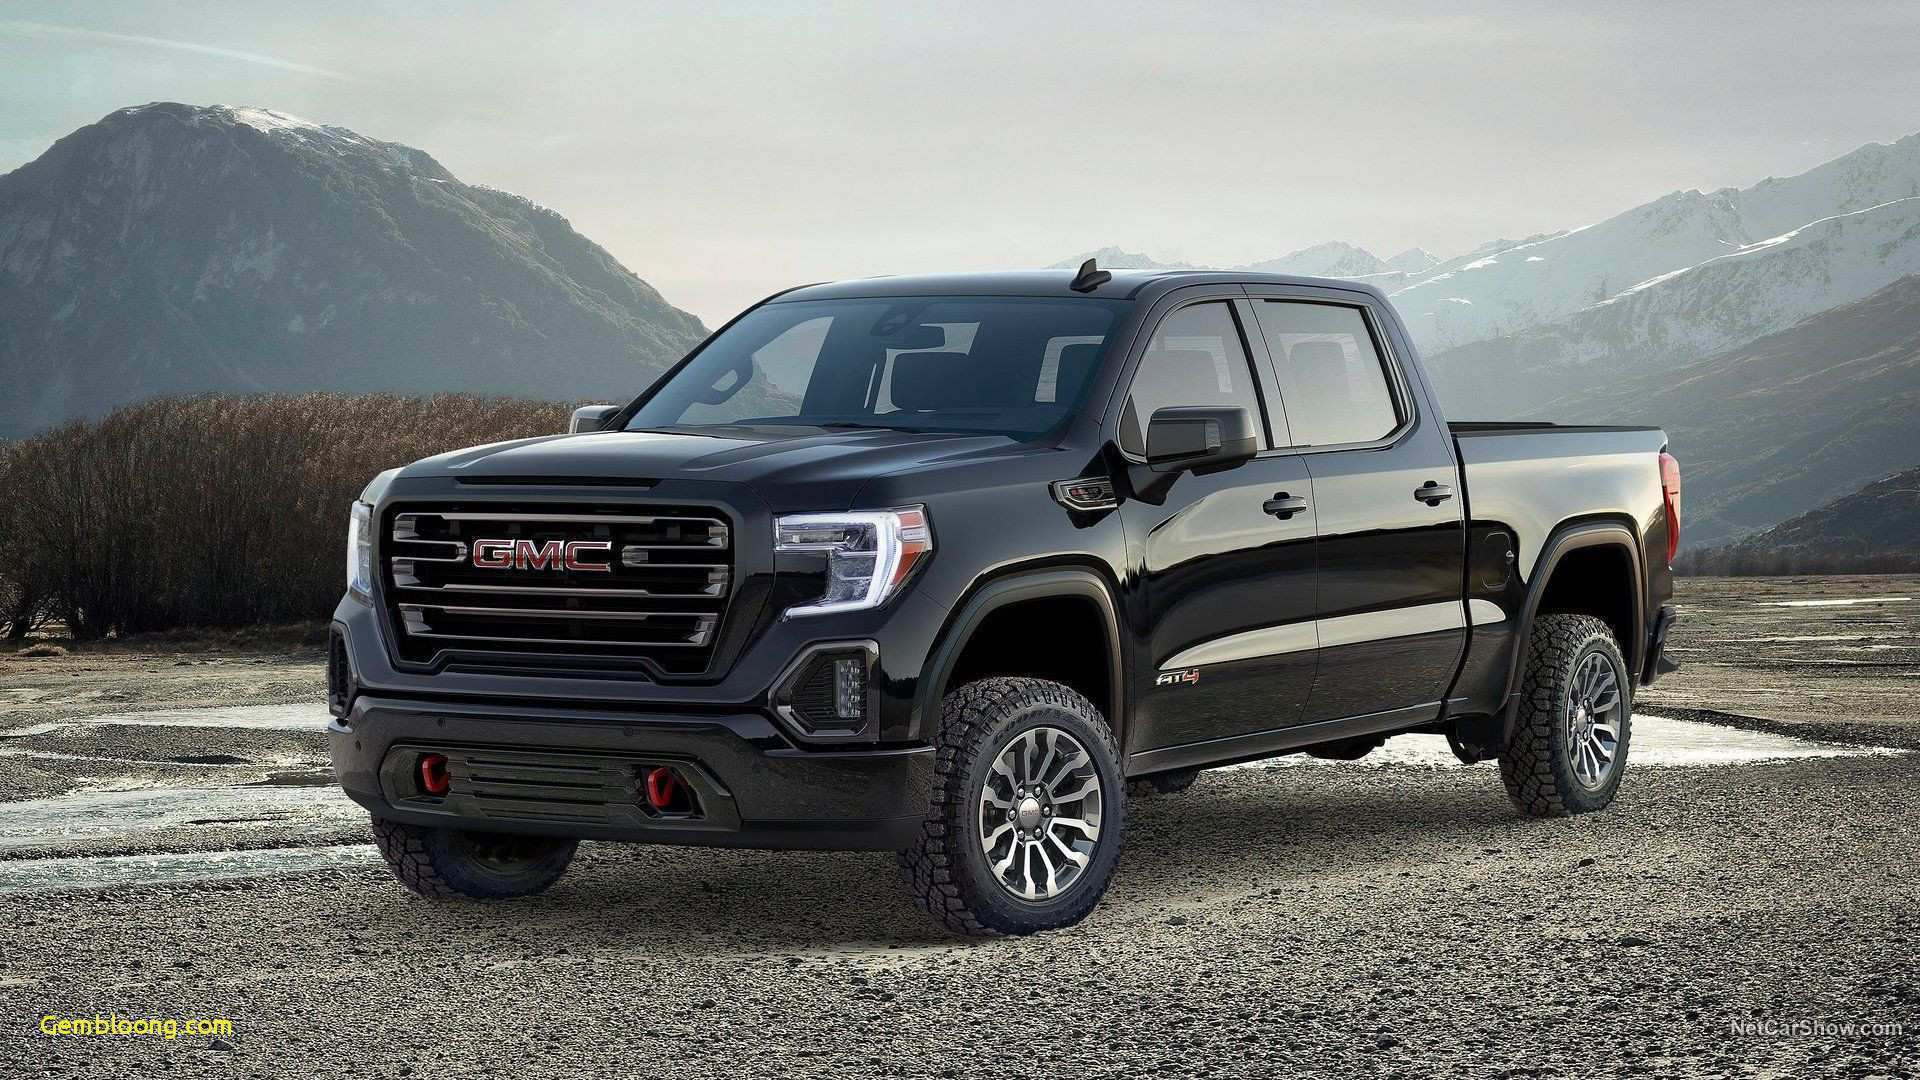 28 The Best 2019 Dodge Dakota Redesign And Review